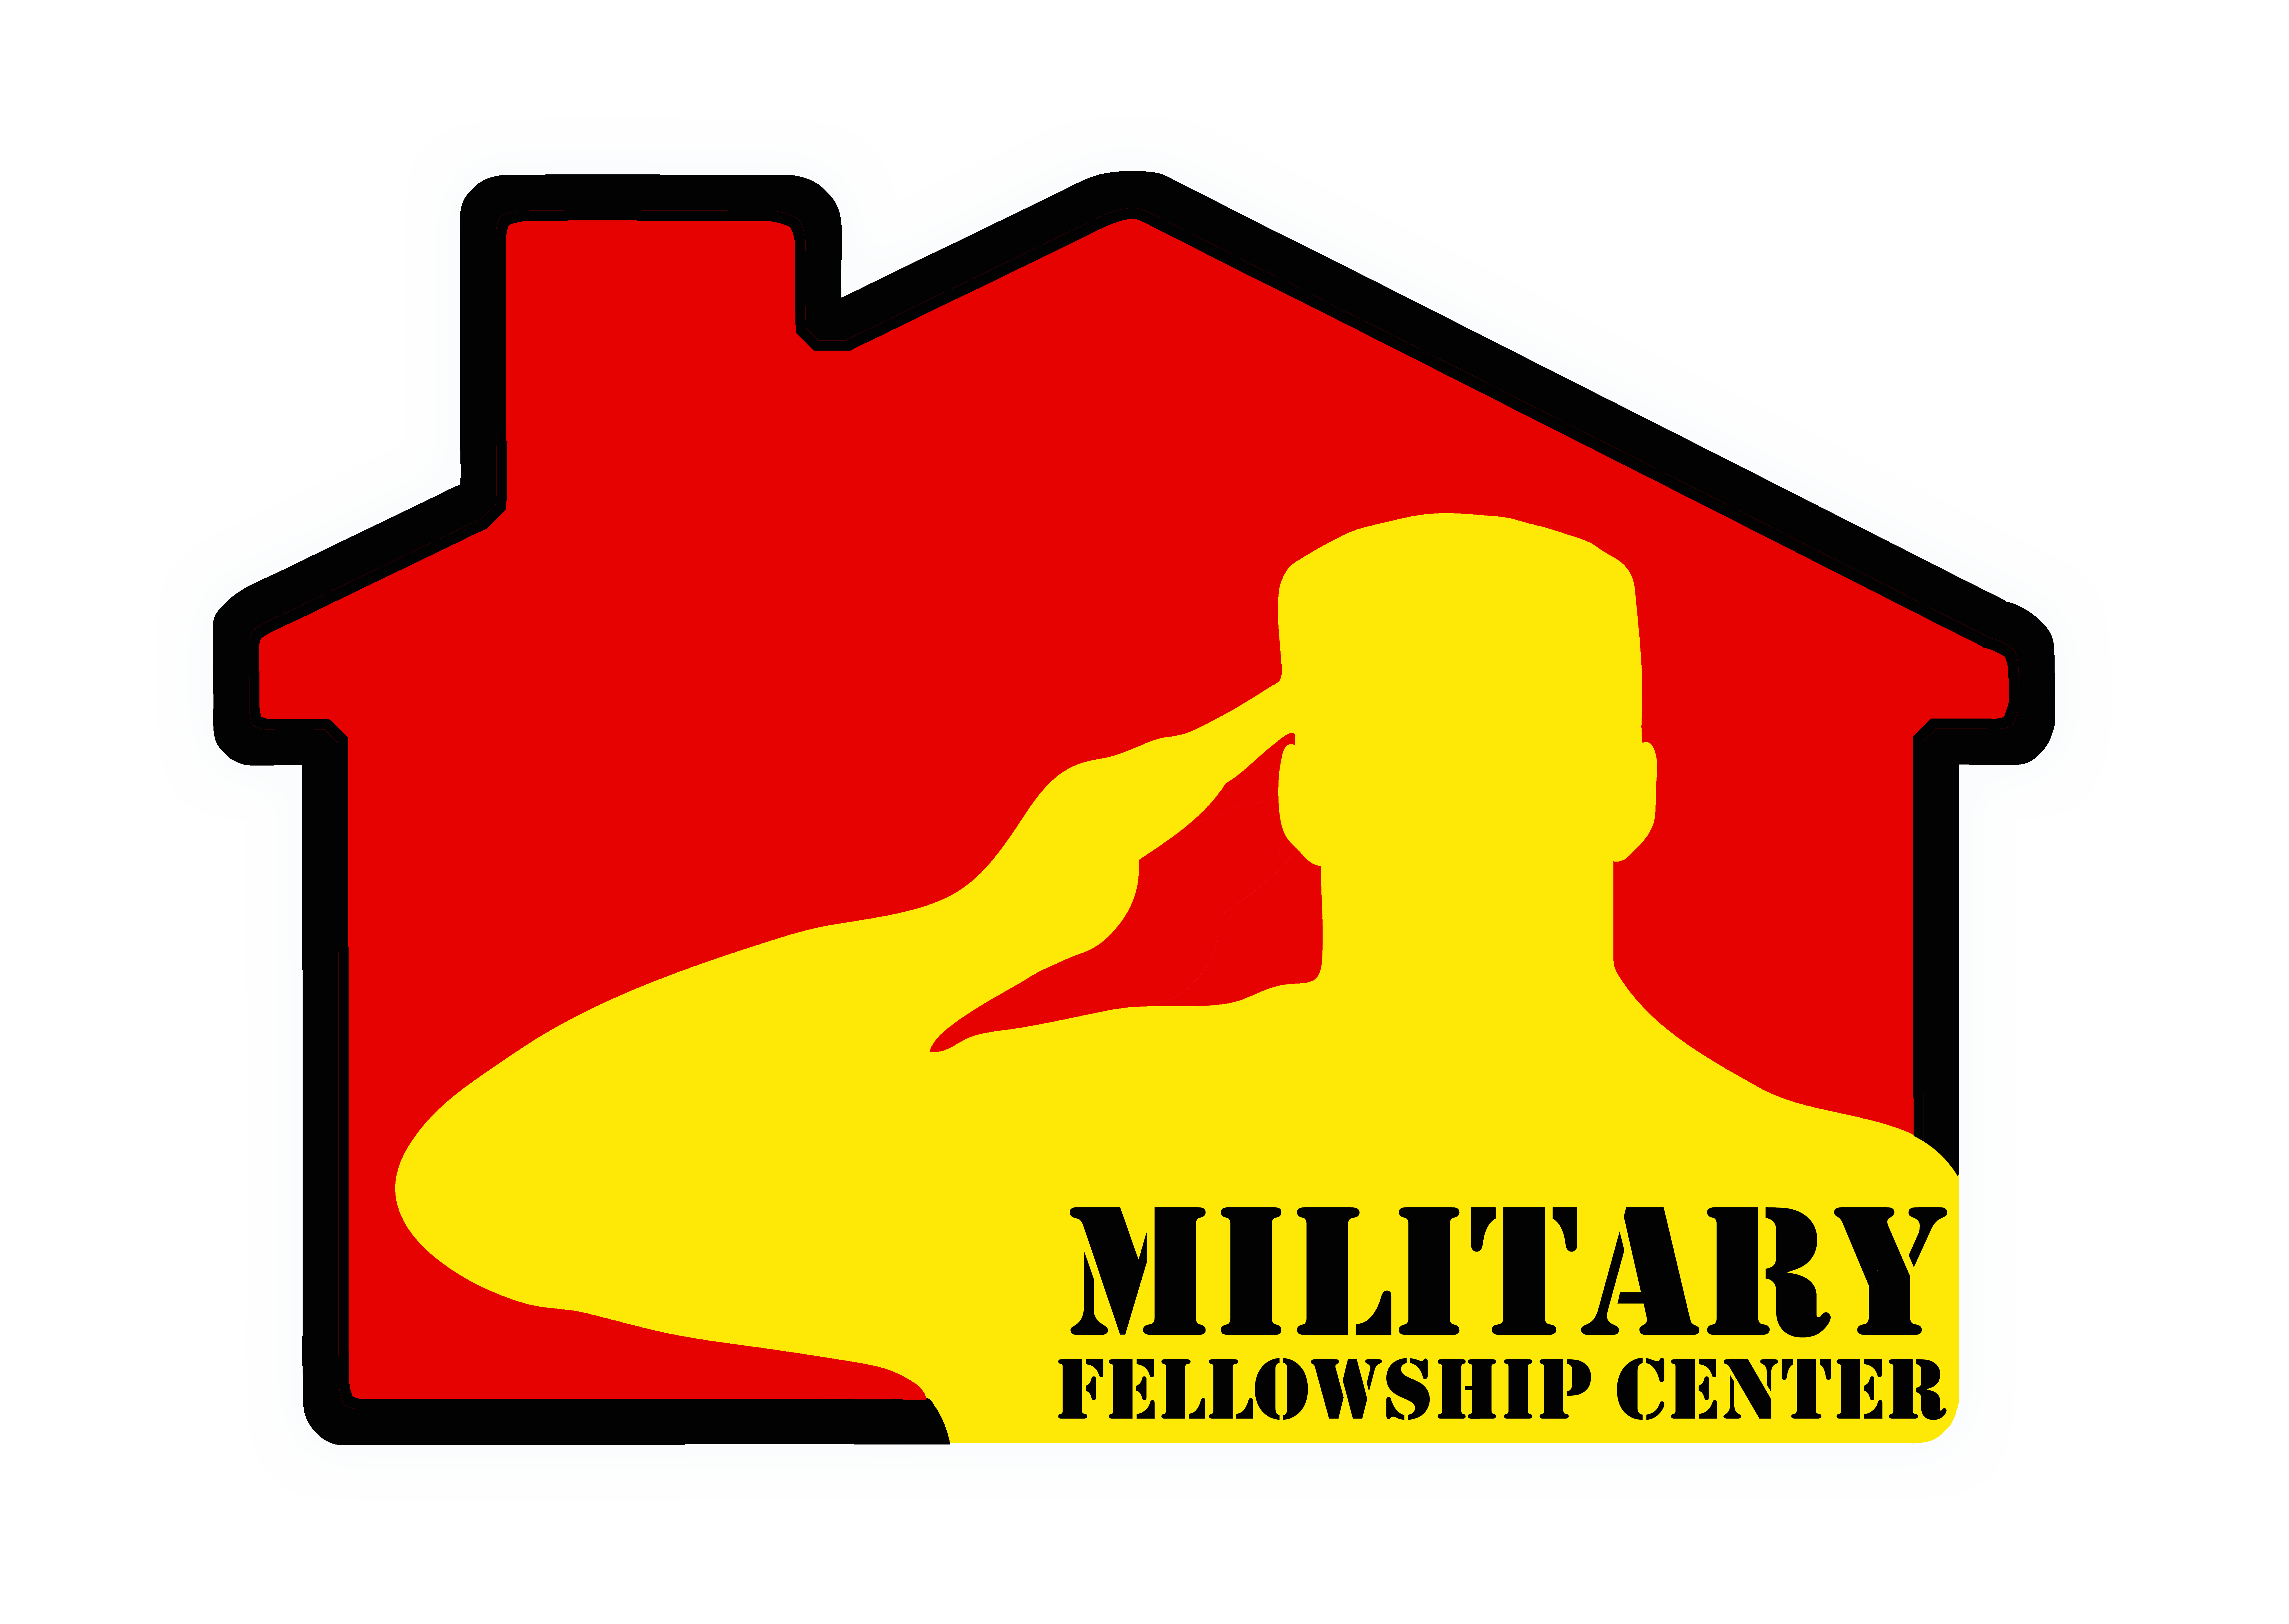 military logo, ifca resources member organizations schools #25310